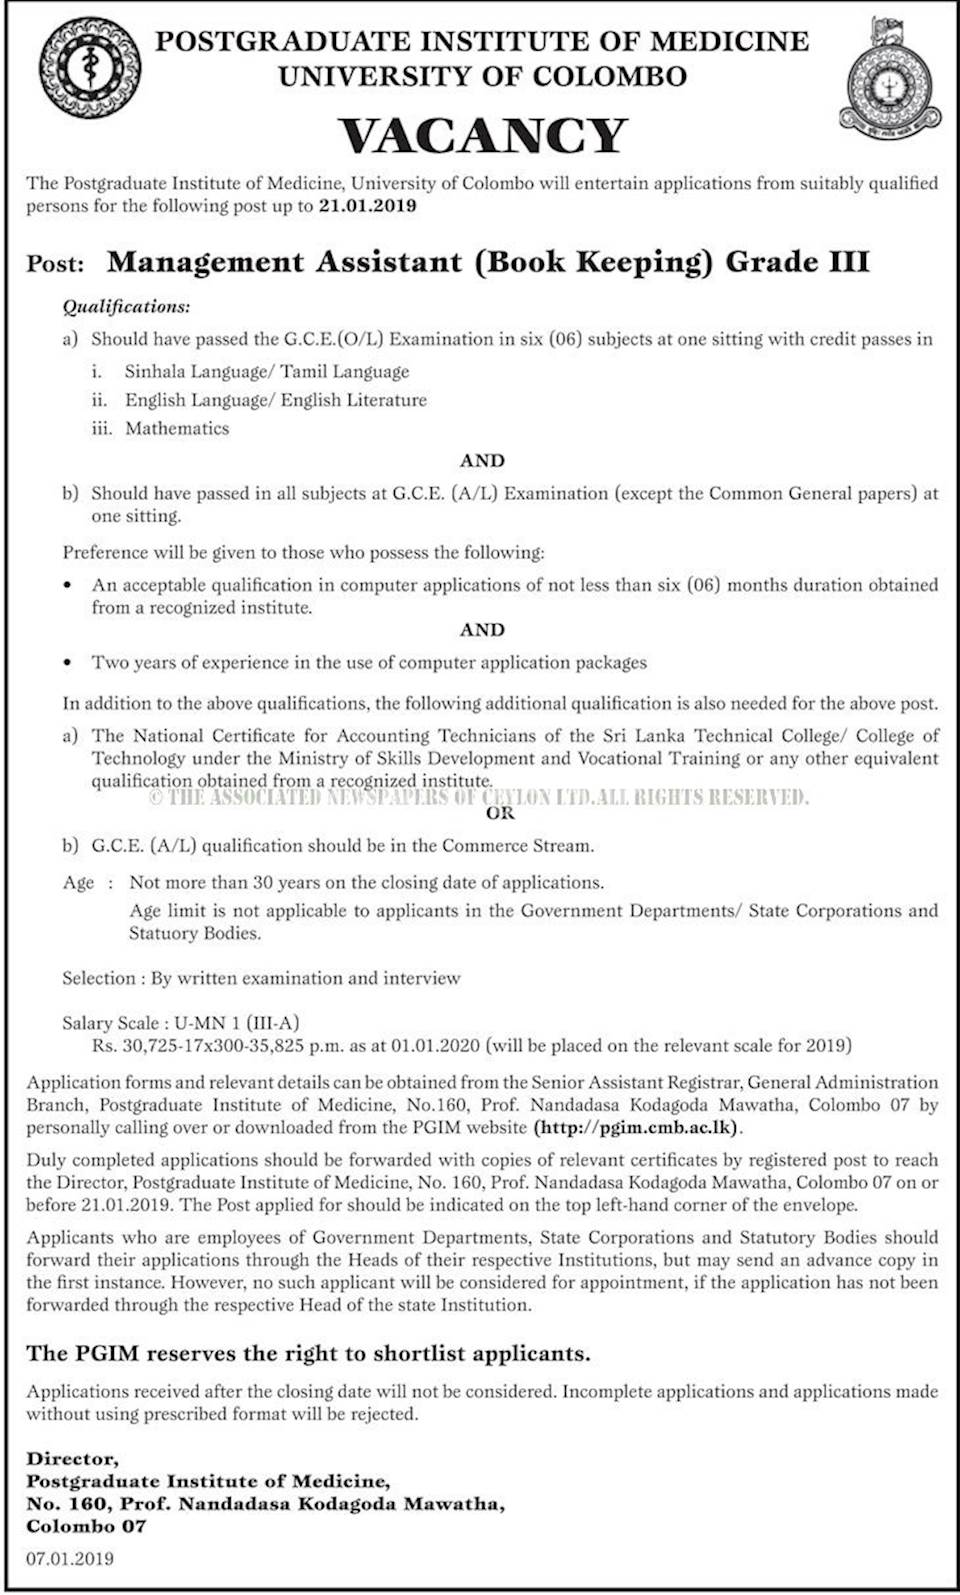 Management Assistant (Book Keeping) Grade III at University of Colombo